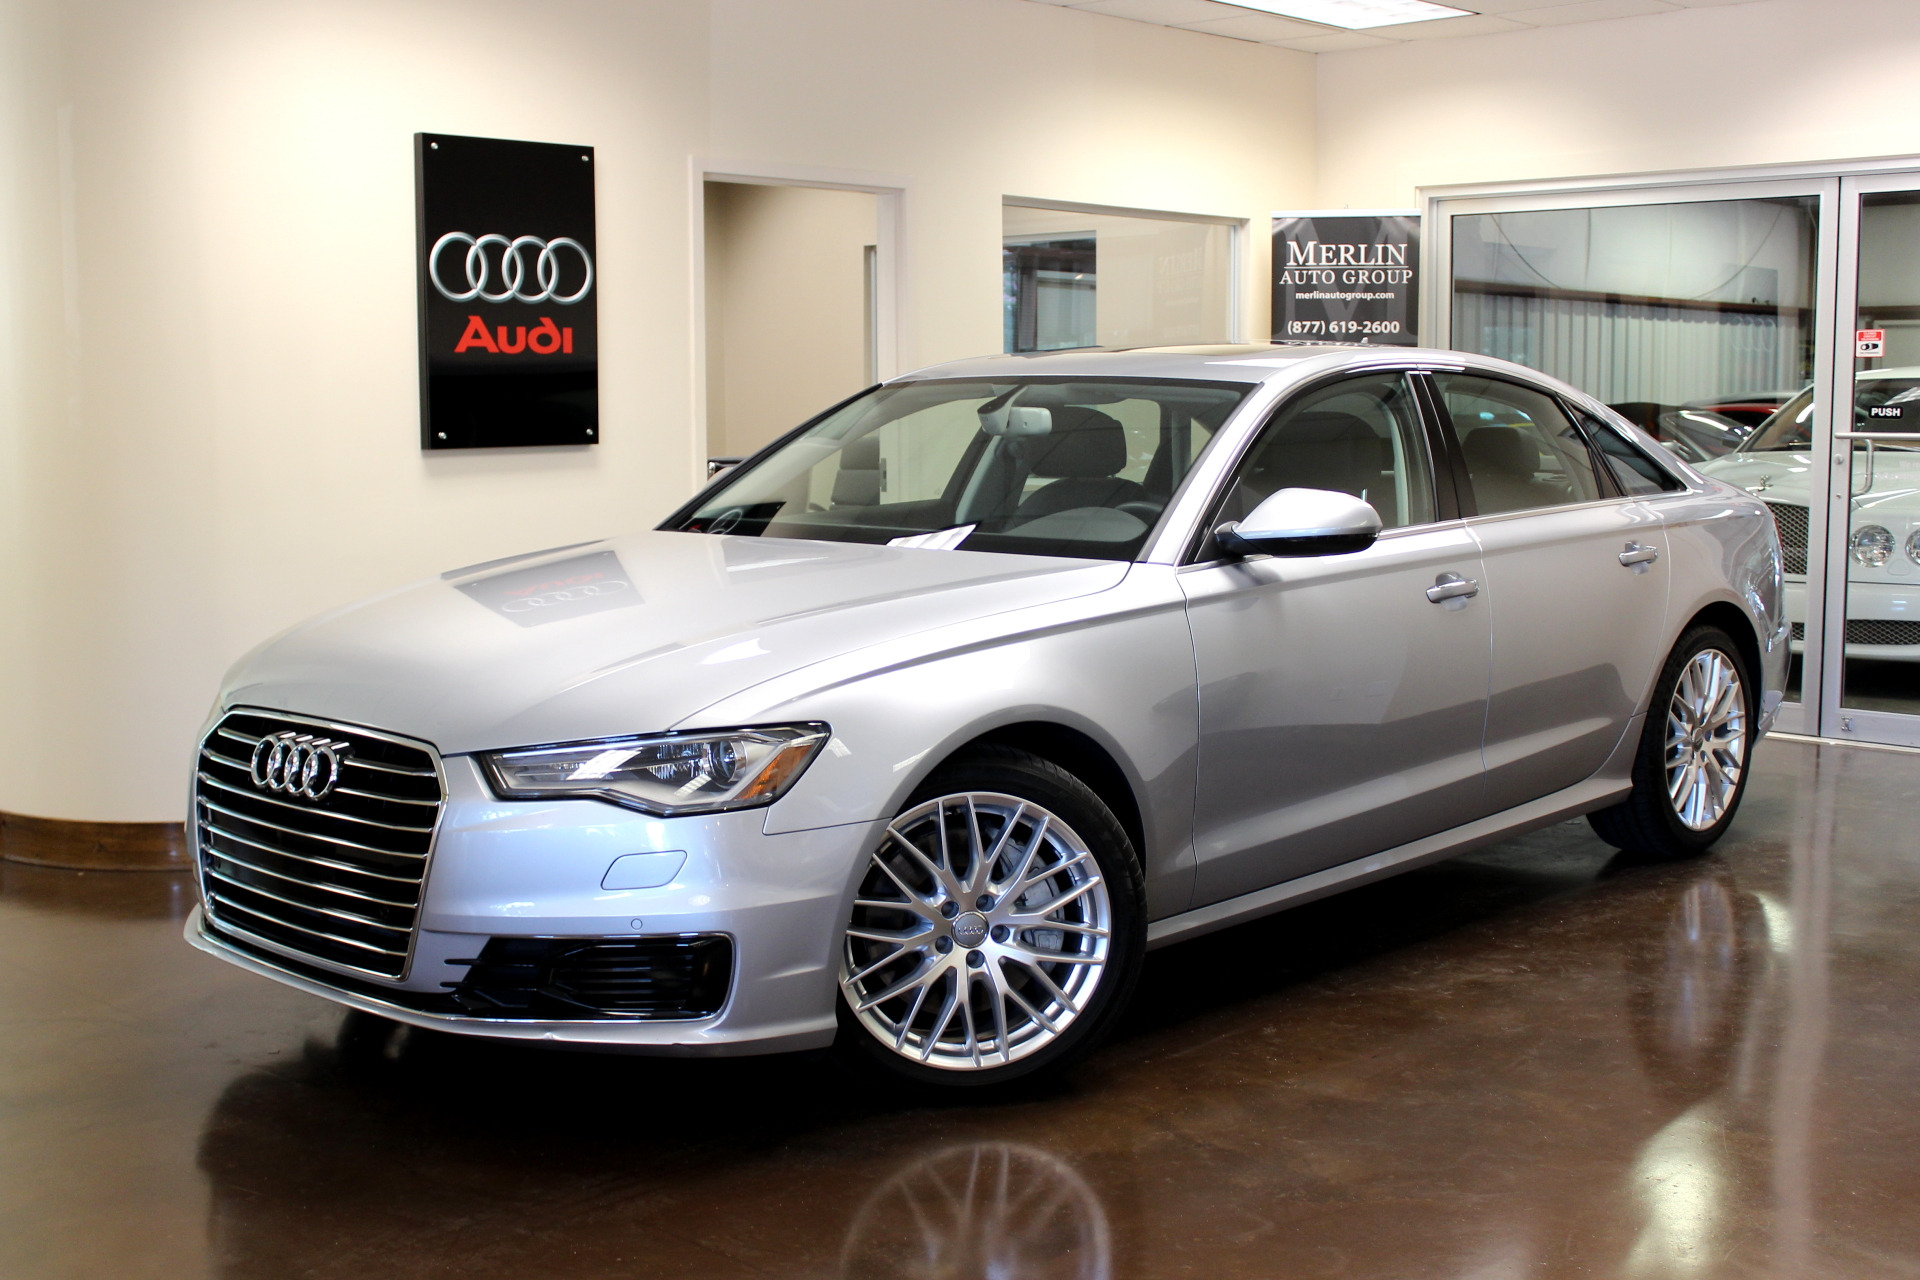 used 2016 audi a6 stock p3101 ultra luxury car from merlin auto group. Black Bedroom Furniture Sets. Home Design Ideas